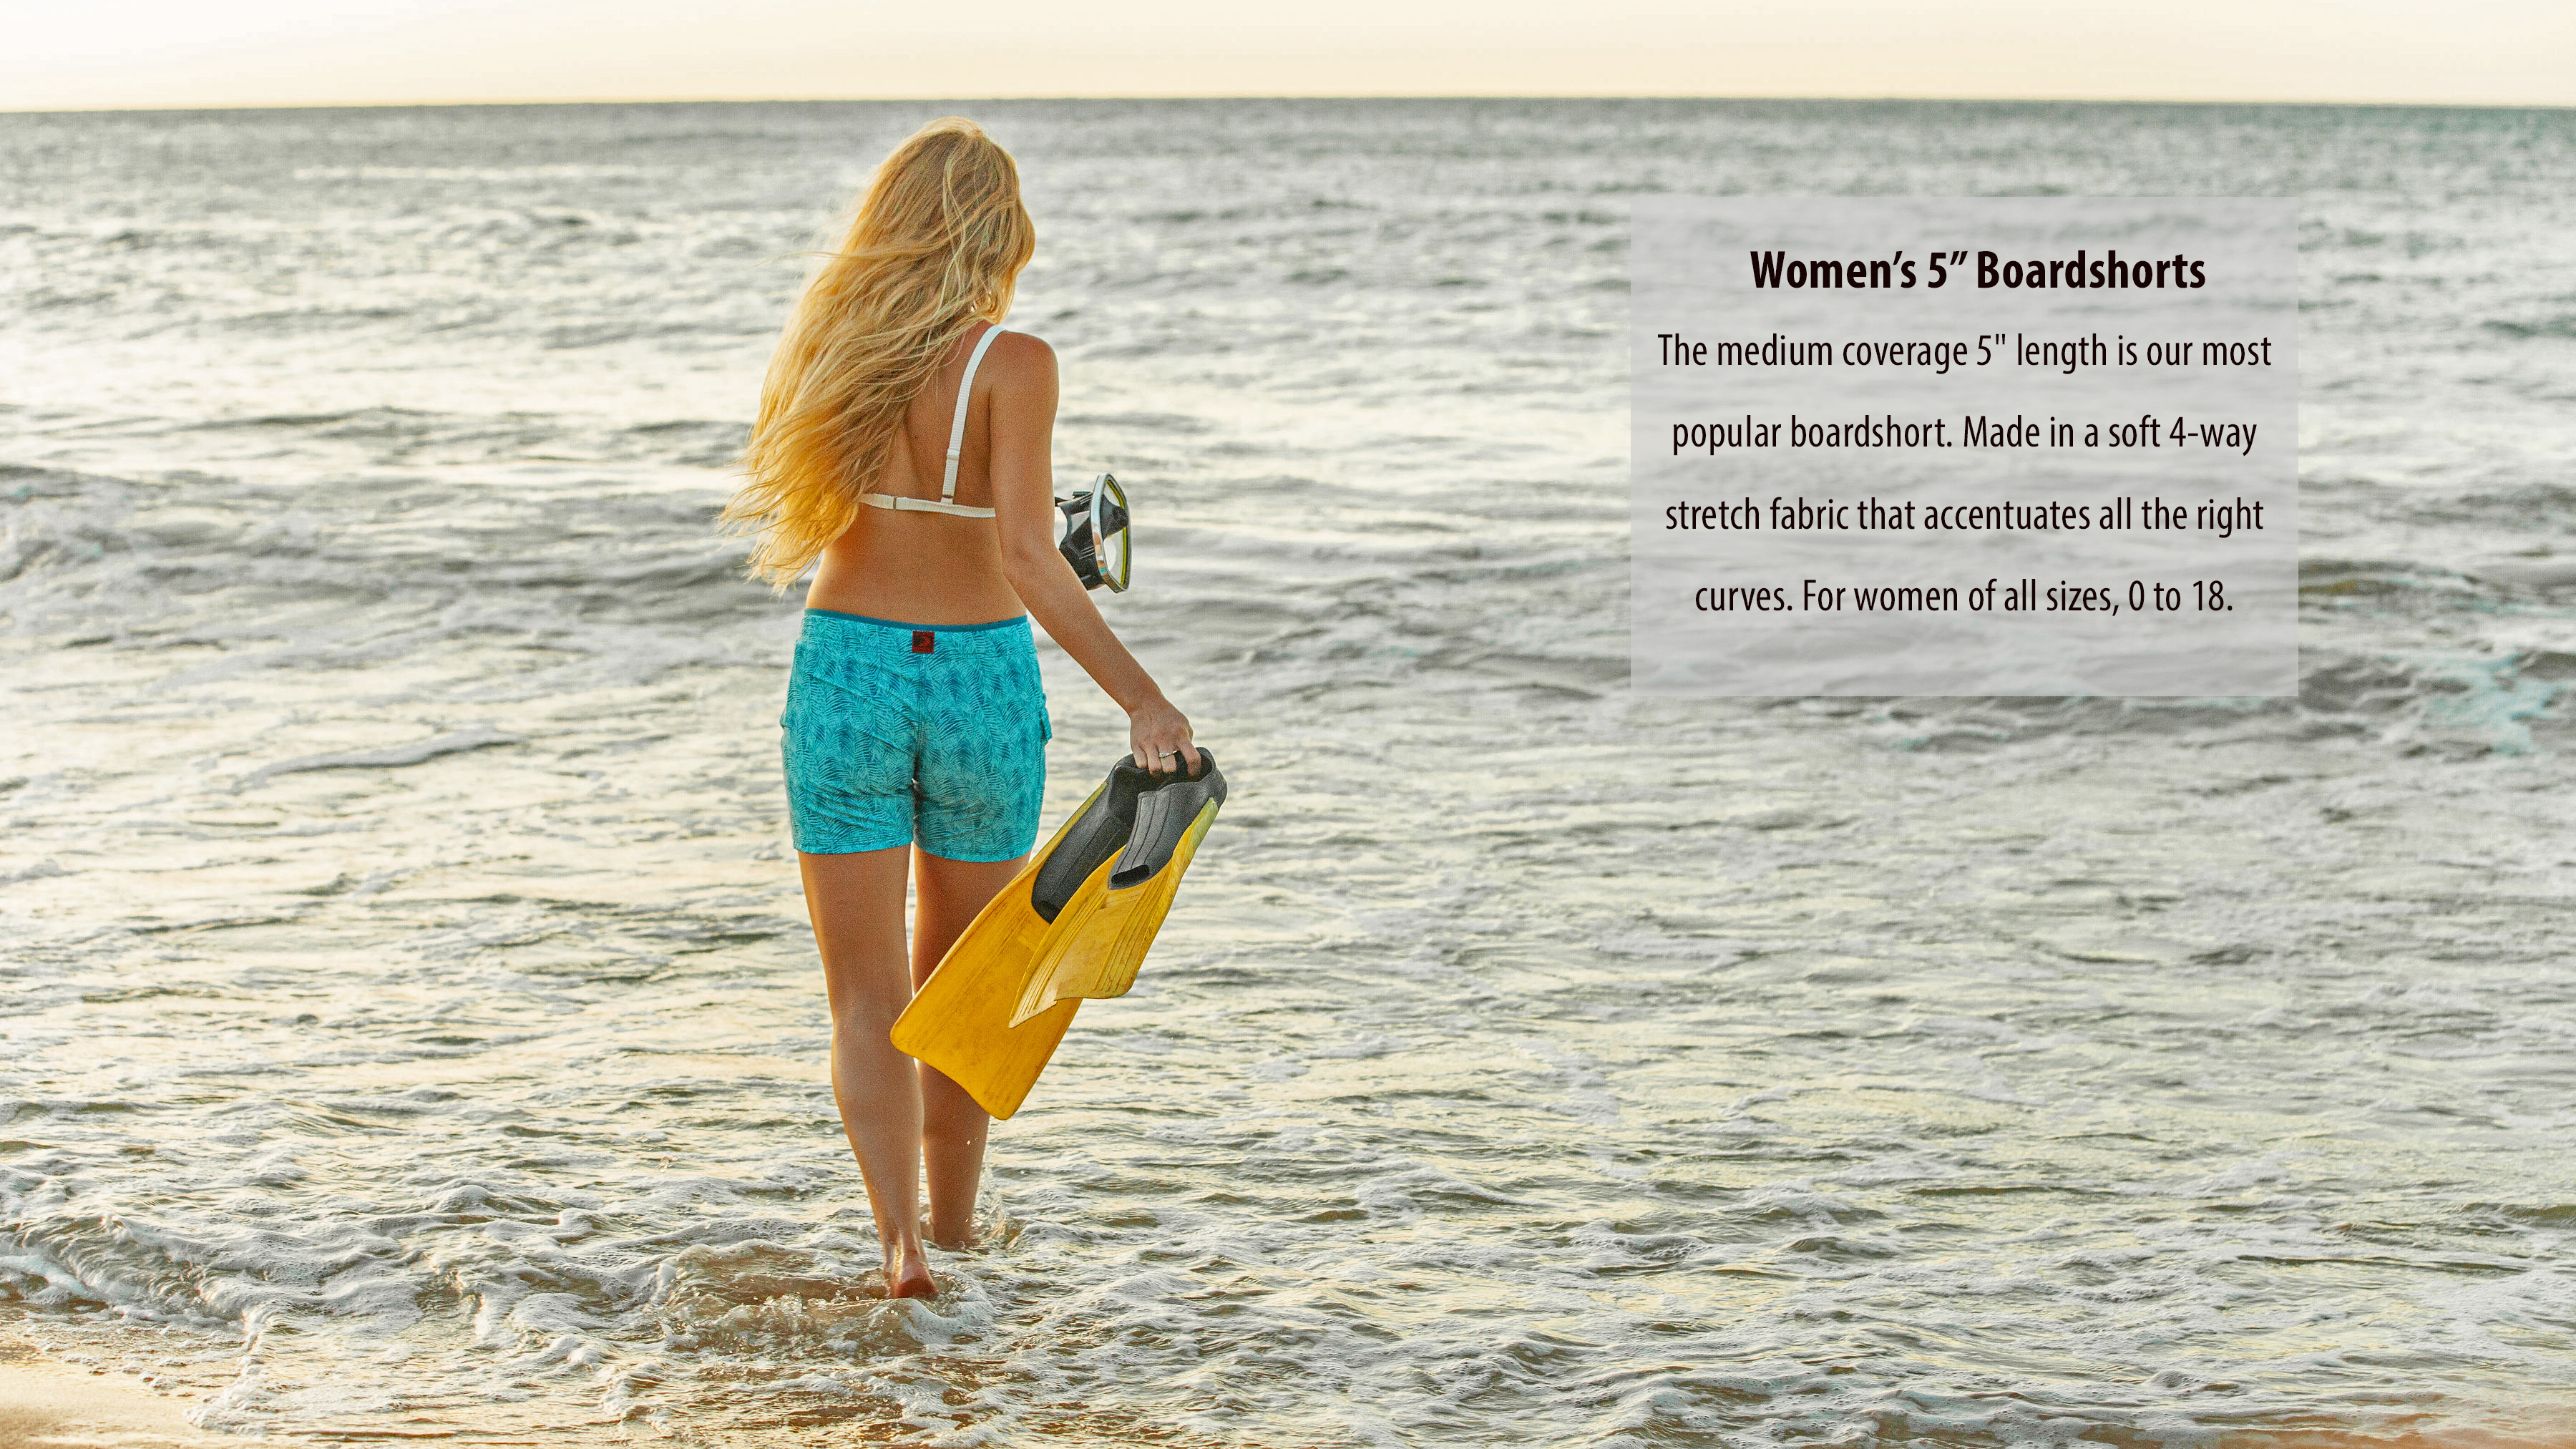 womens-5-boardshorts-header.jpg